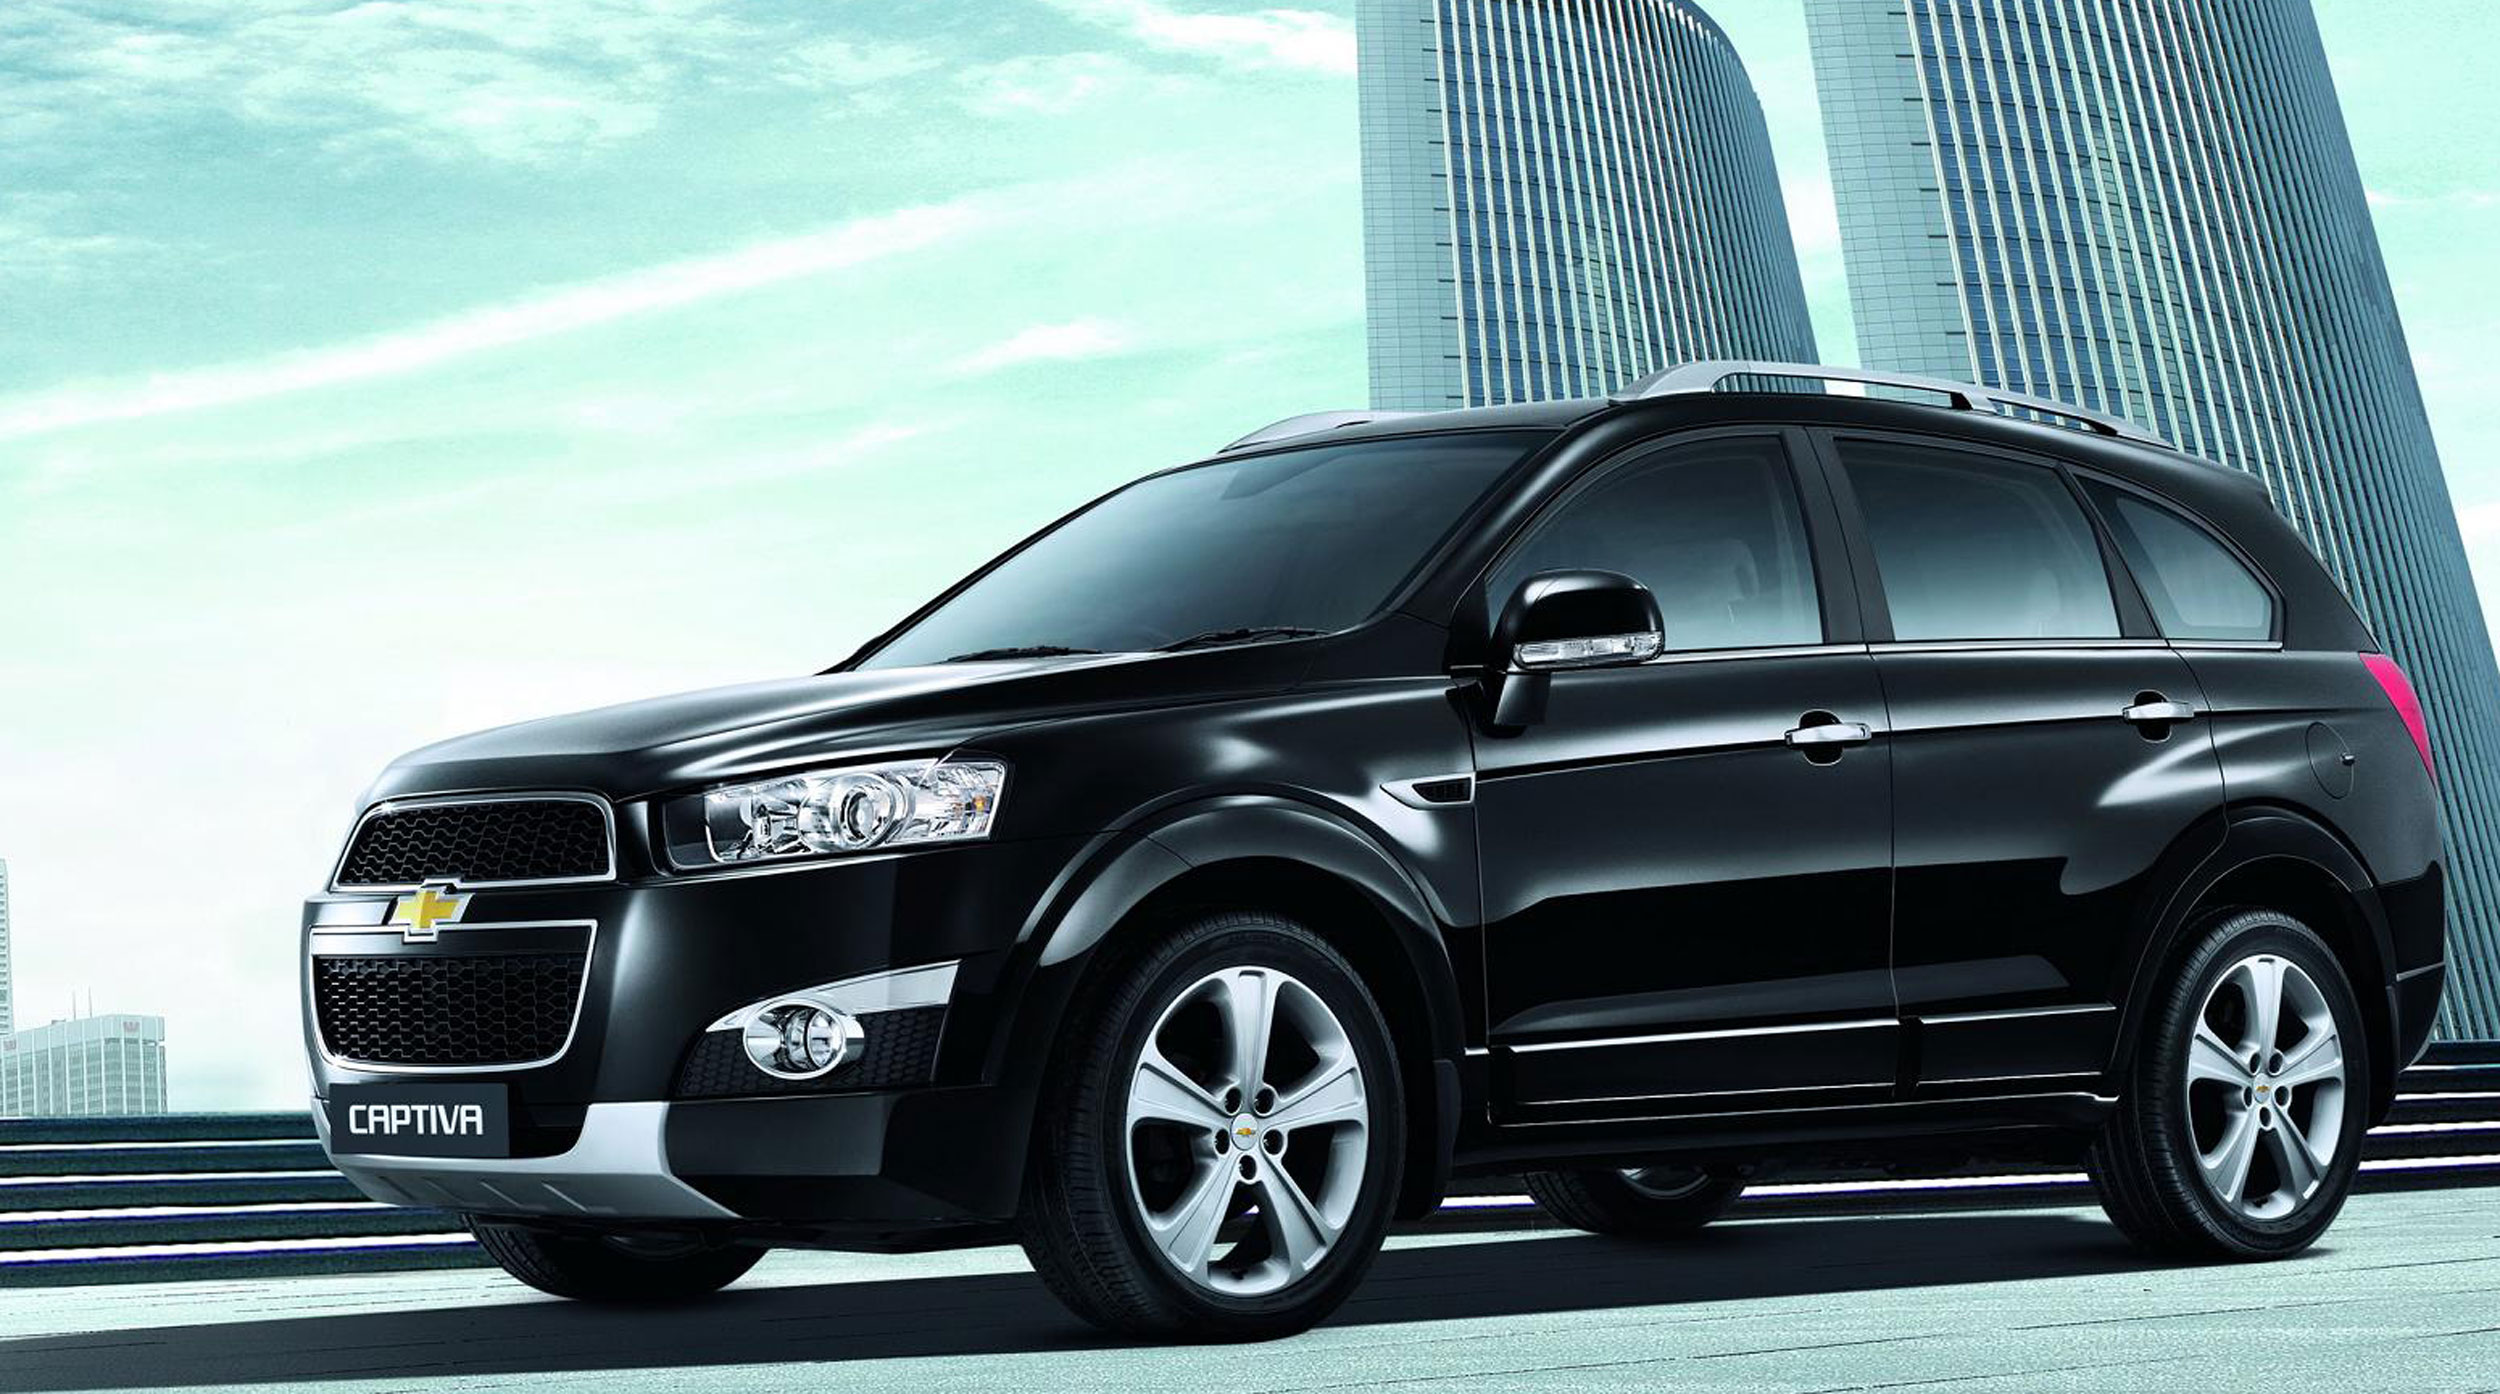 Chevrolet Malaysia offers Captiva purchase deal